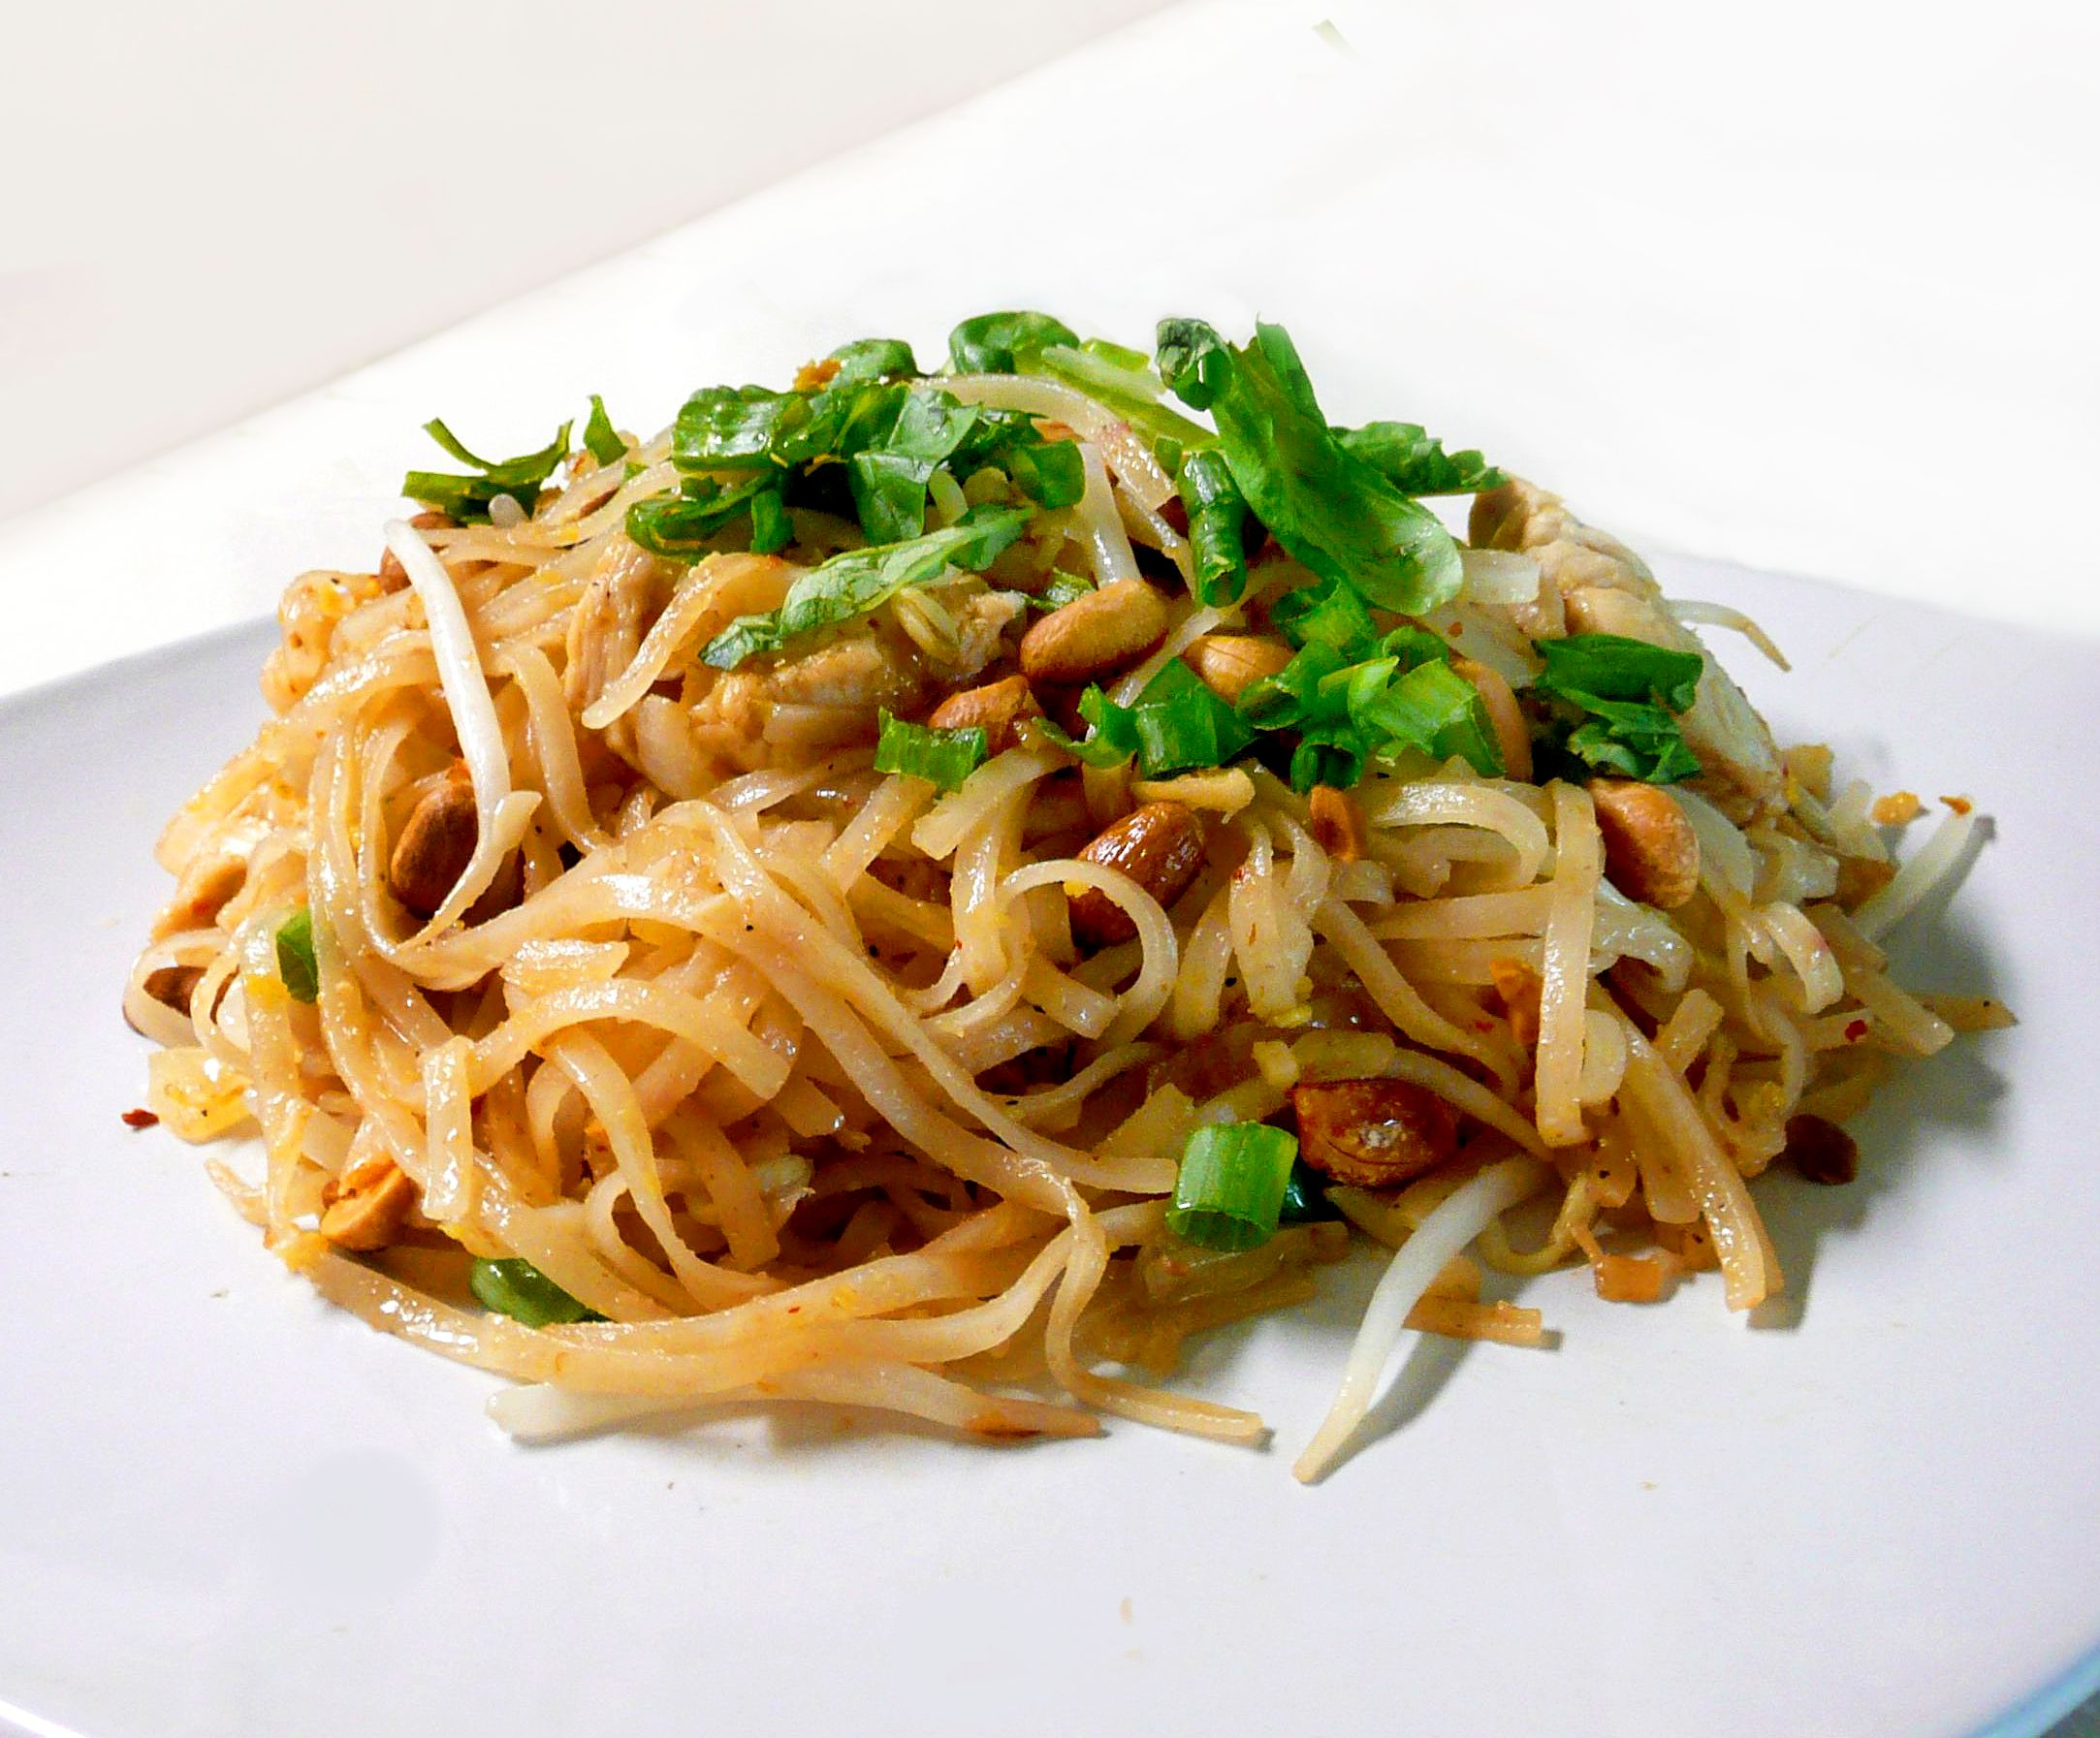 Pad Thai - The Partial Ingredients